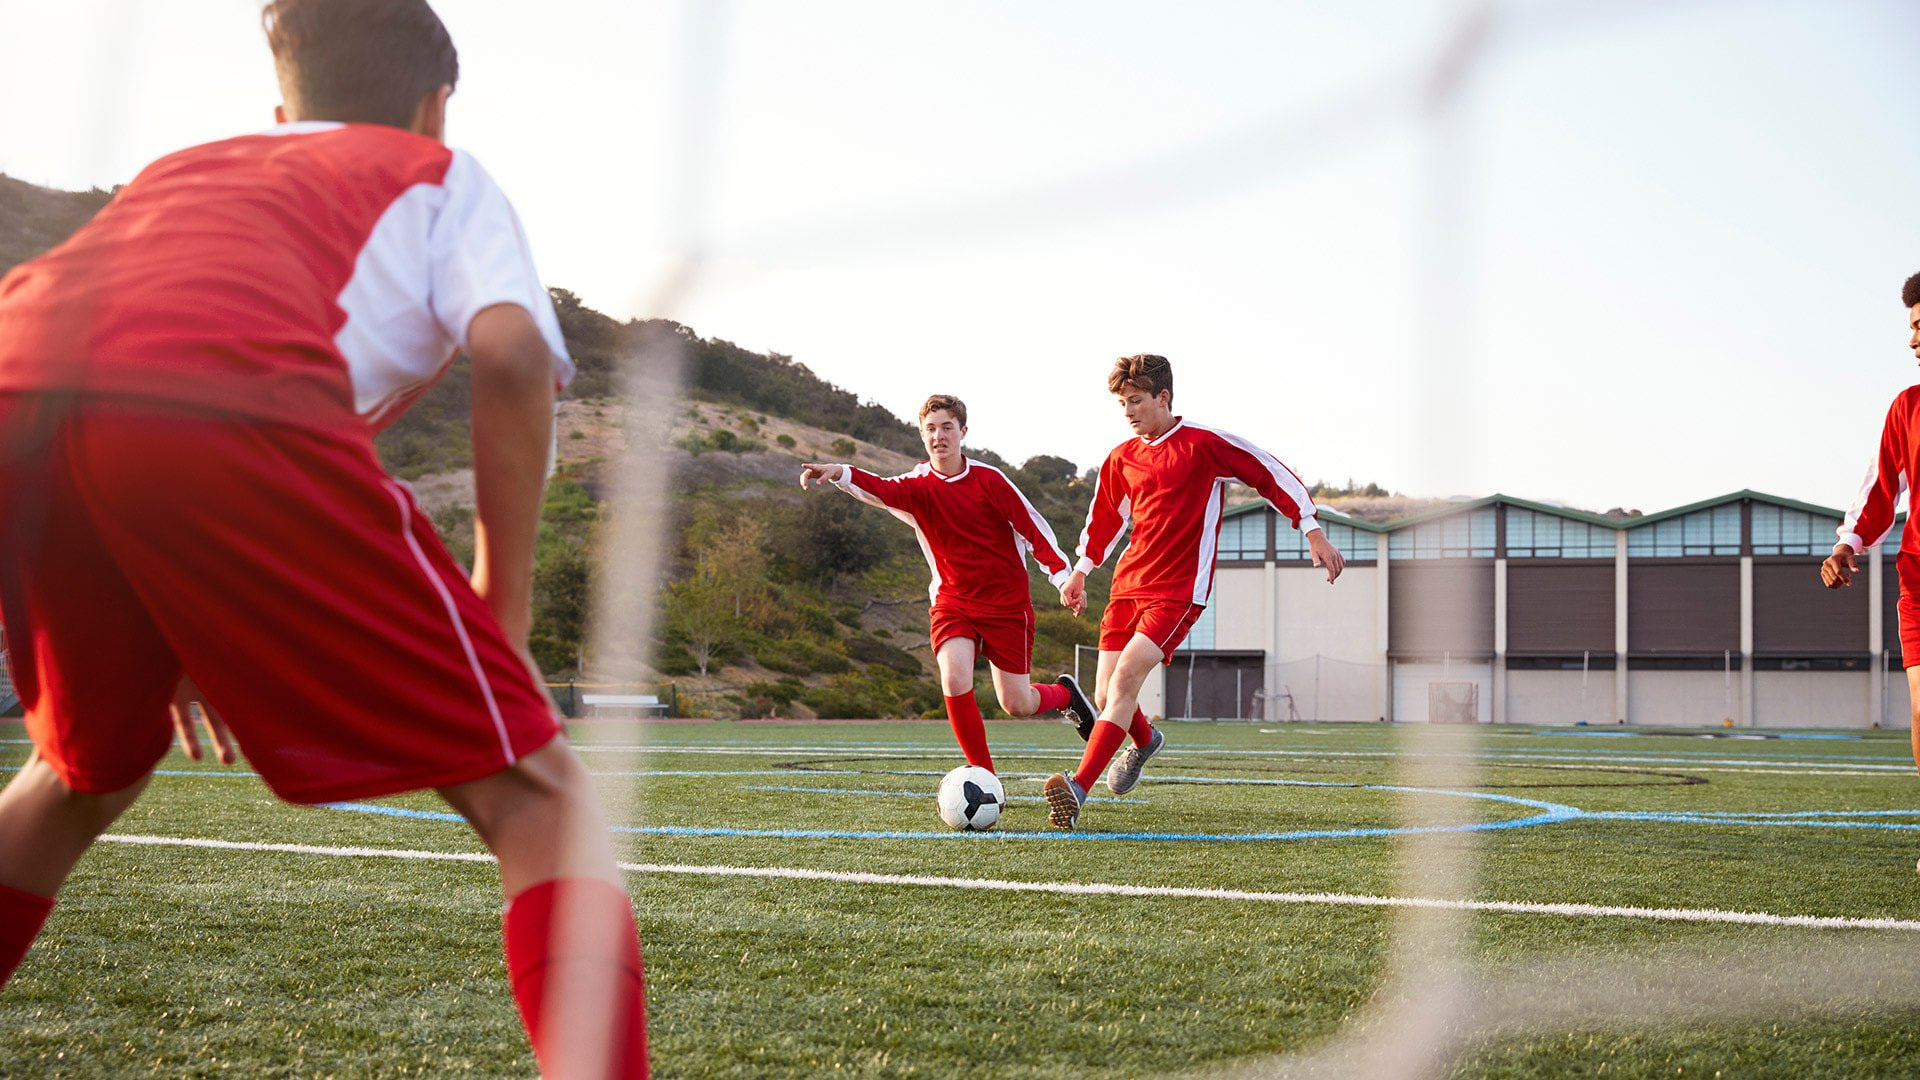 Group-of-Male-High-School-Students-Playing-in-Soccer-Team